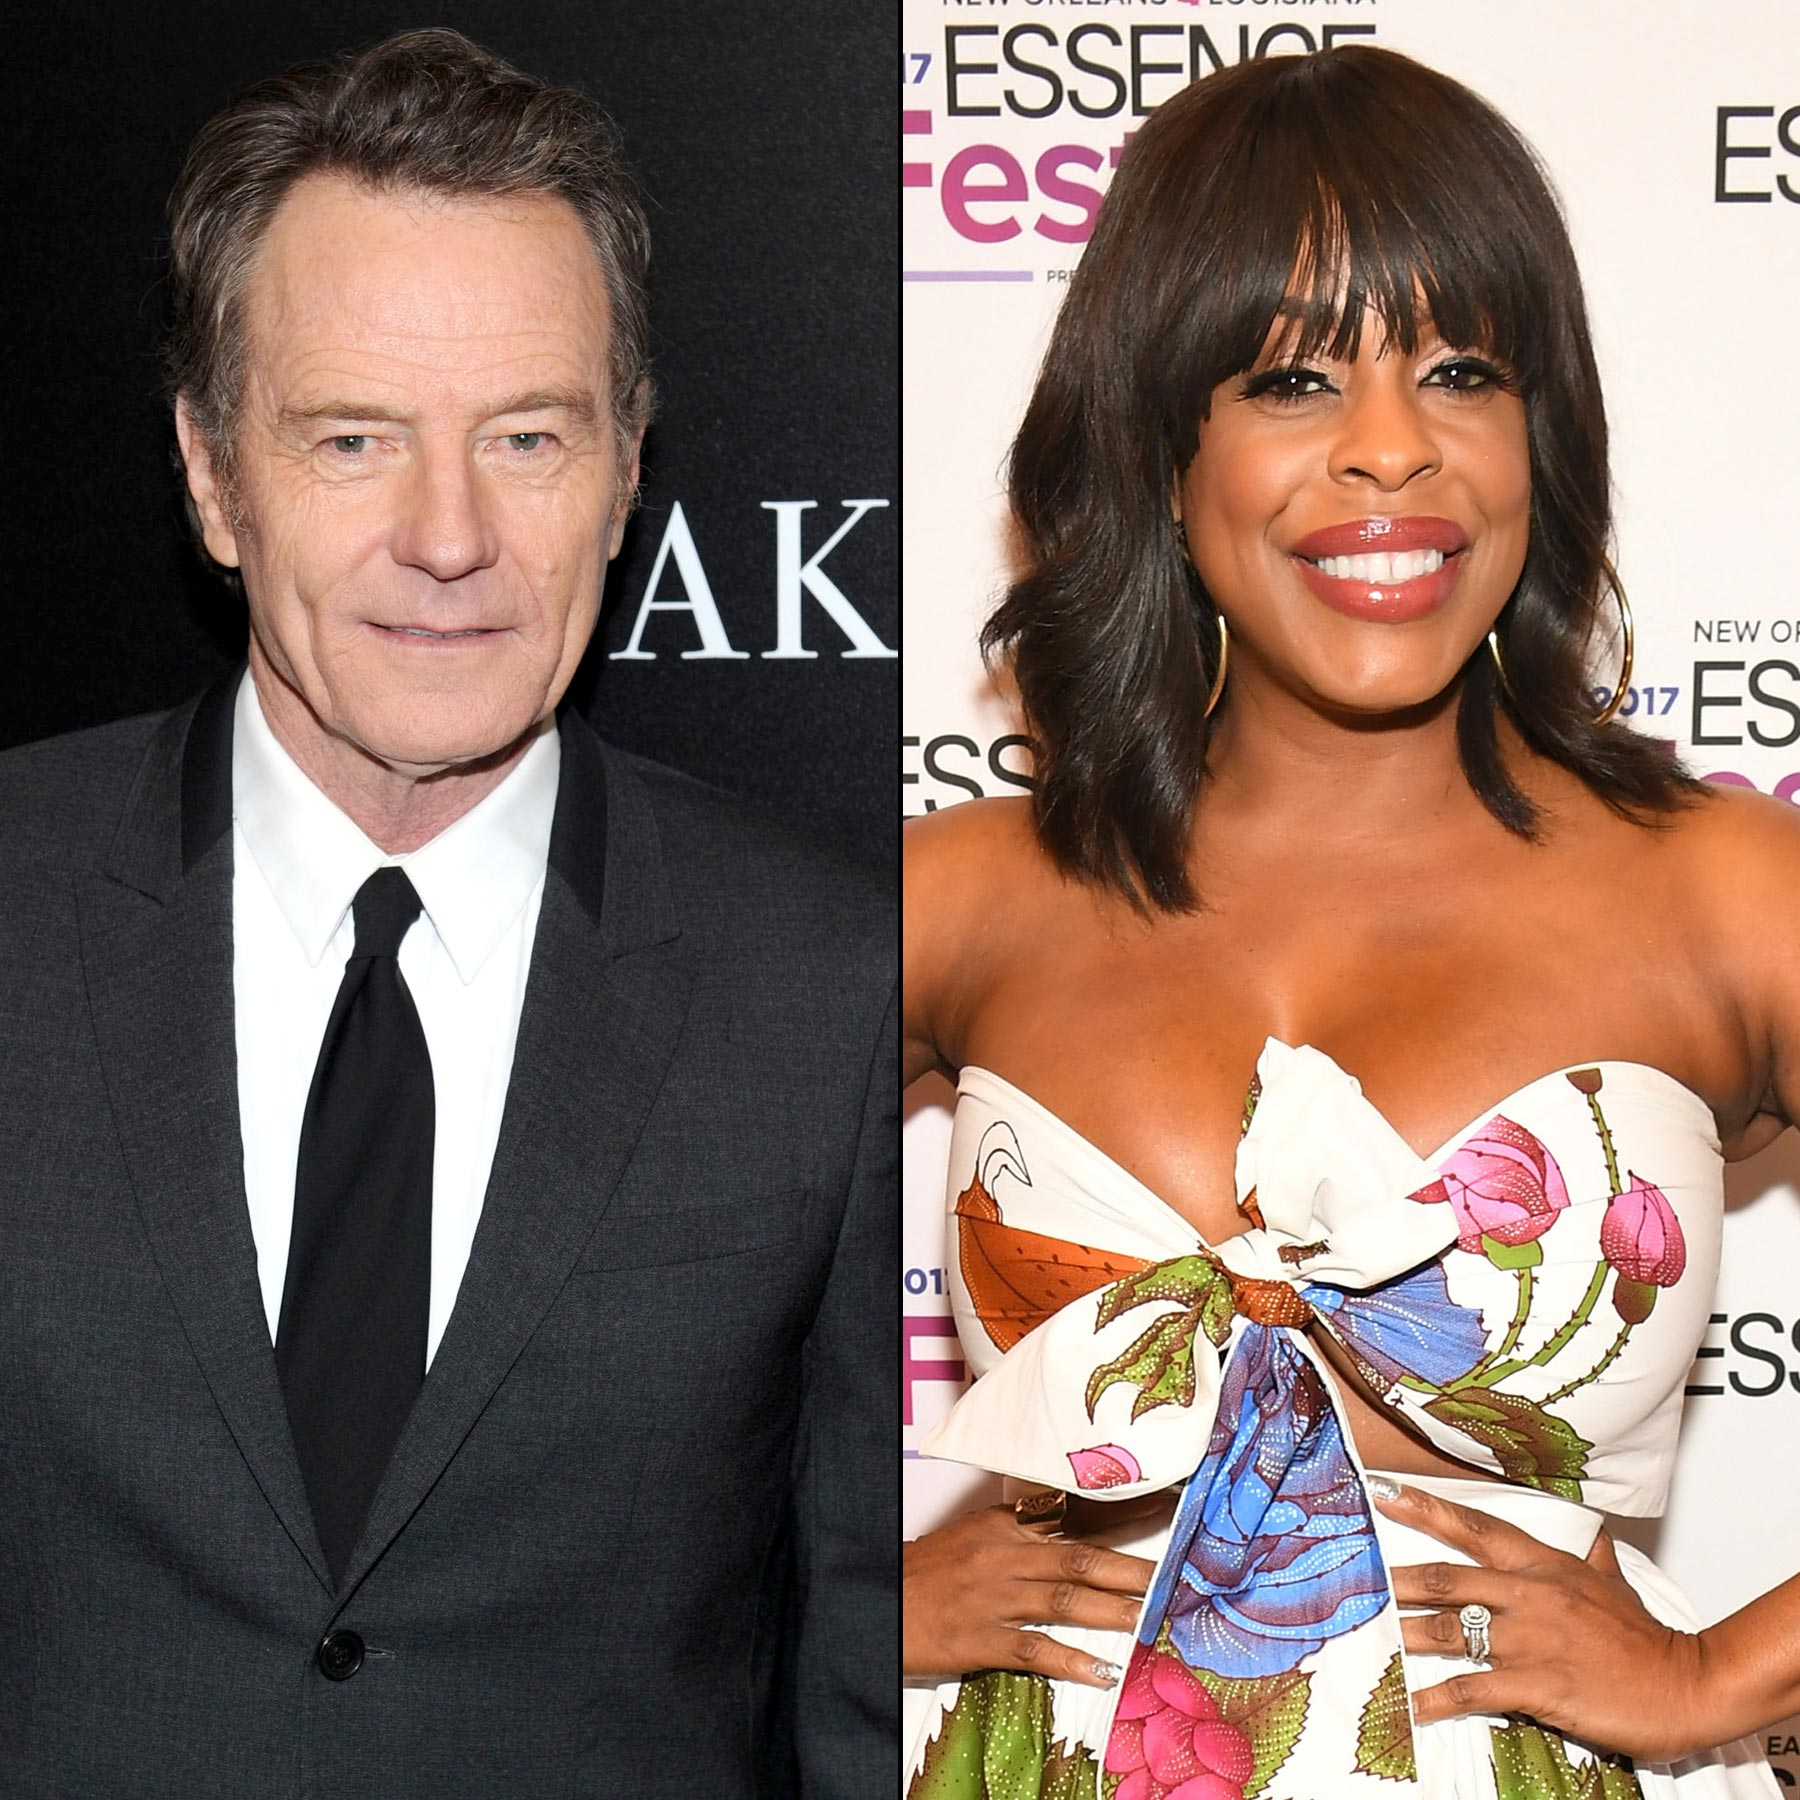 Family Guy Bryan Cranston Niecy Nash To Play Peter S New Bosses Ew Com Kate doesn't know why she's here or how to put her back where she belongs, but she's real. family guy bryan cranston niecy nash